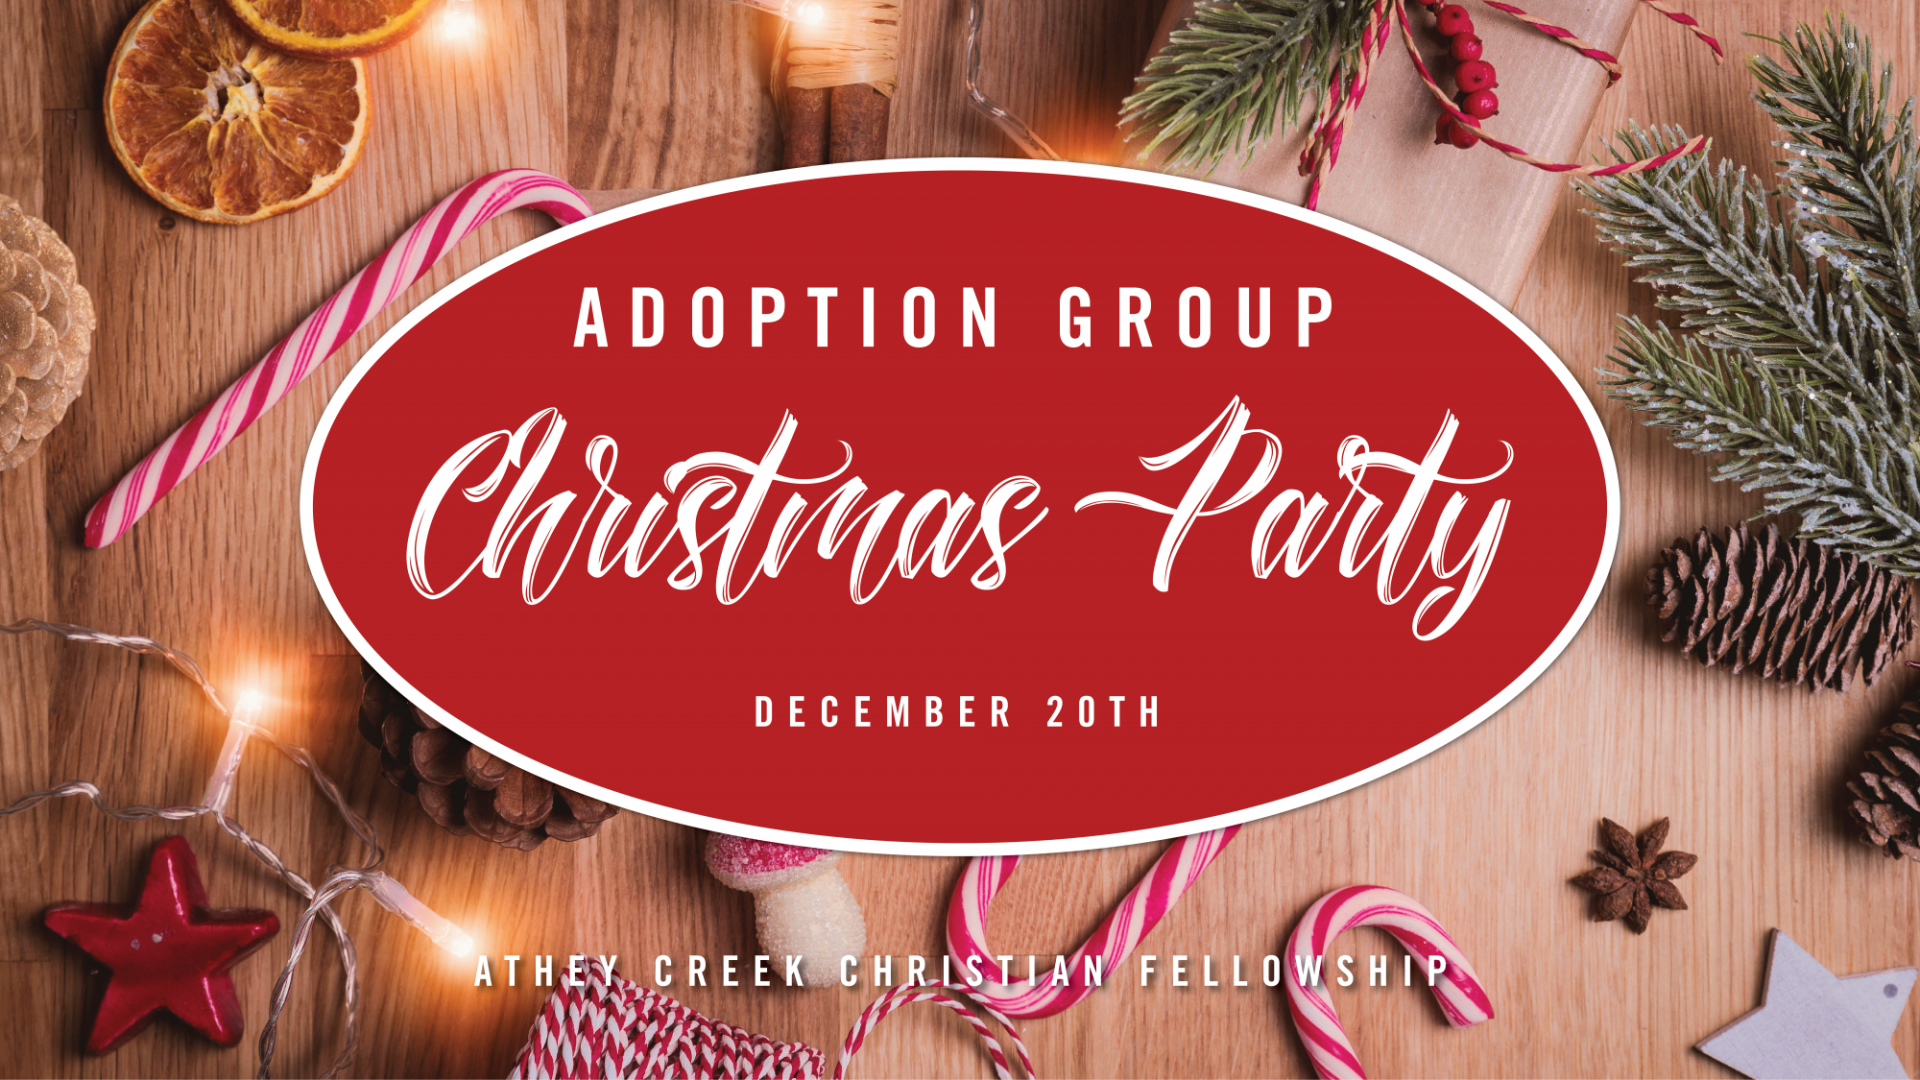 Poster for Adoption Group Christmas Party